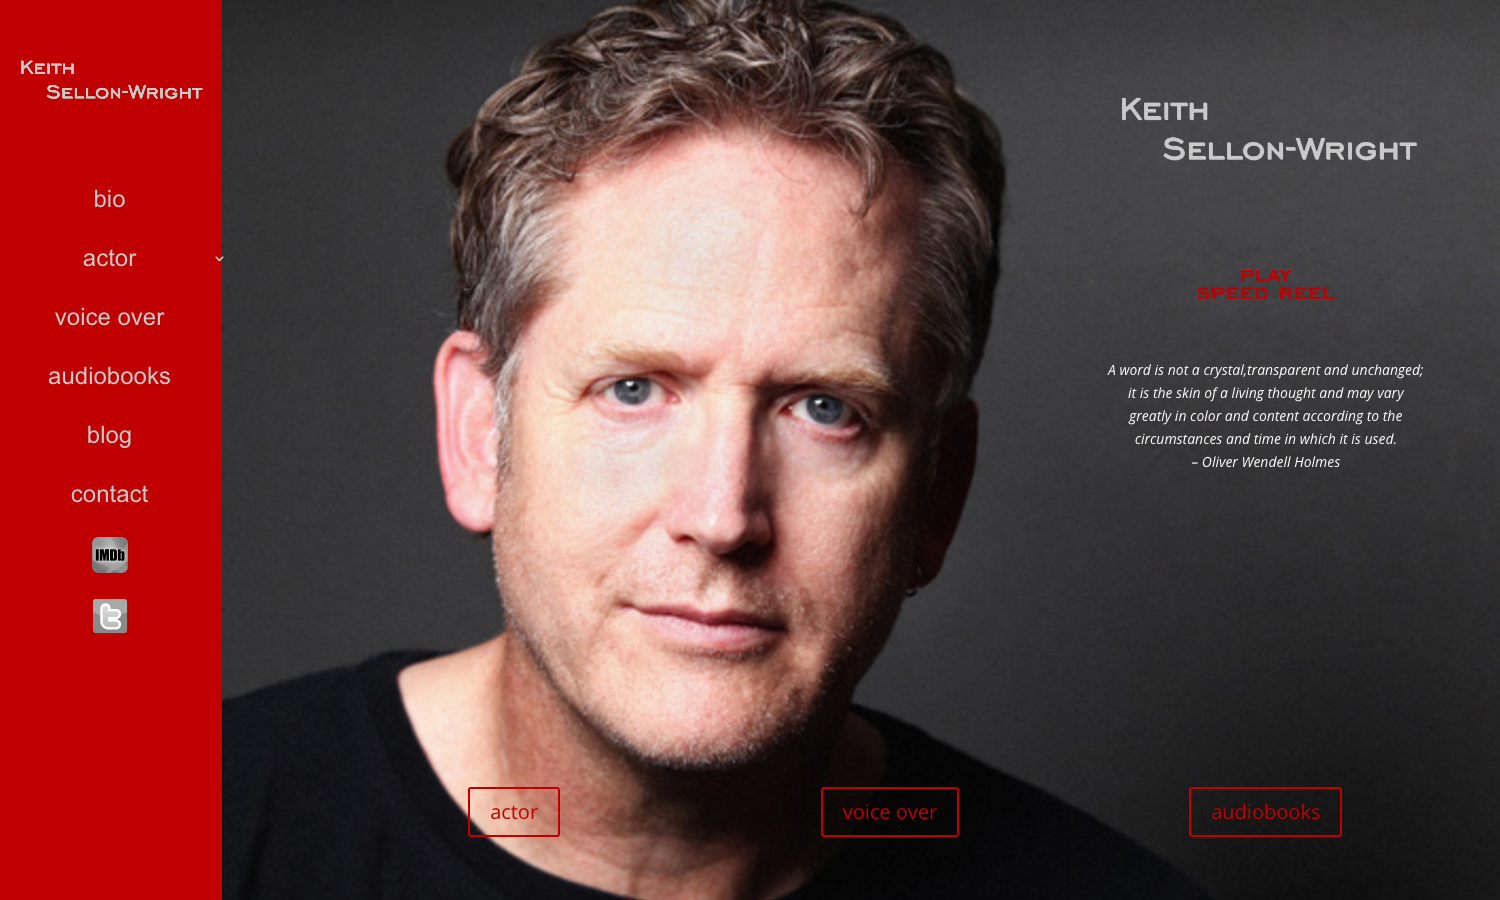 Keith Sellon-Wright Website